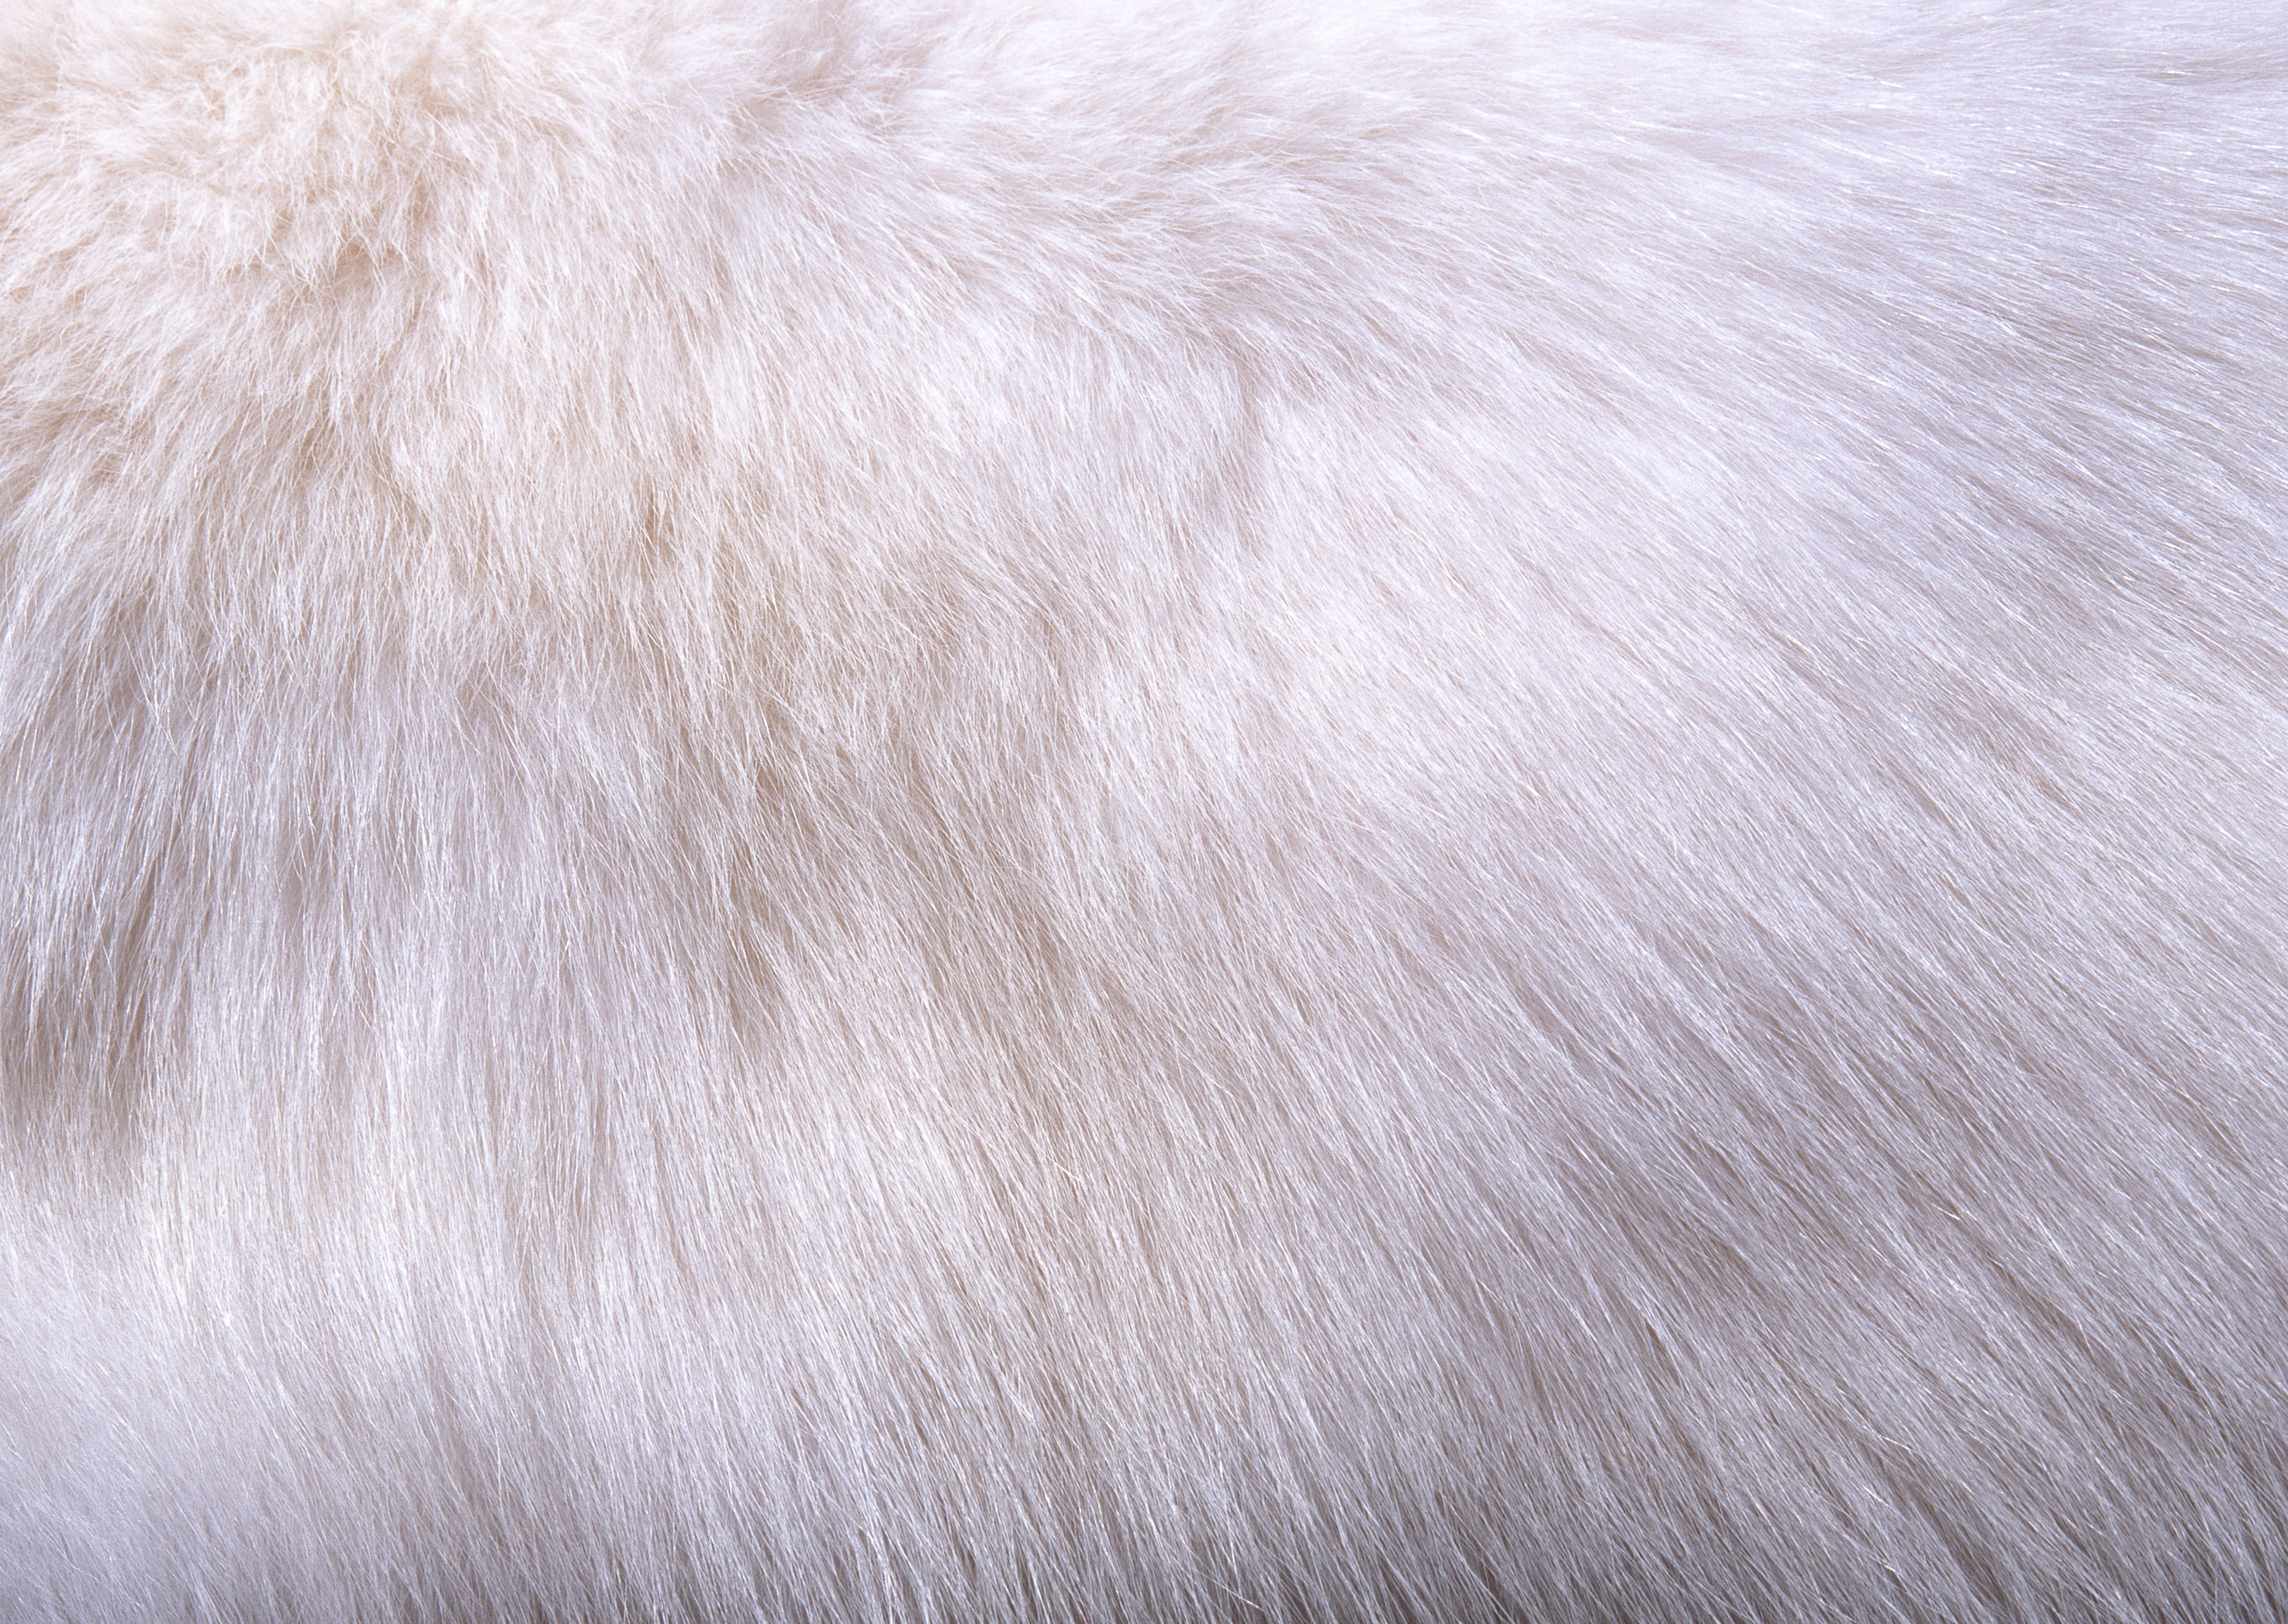 White fur texture background image